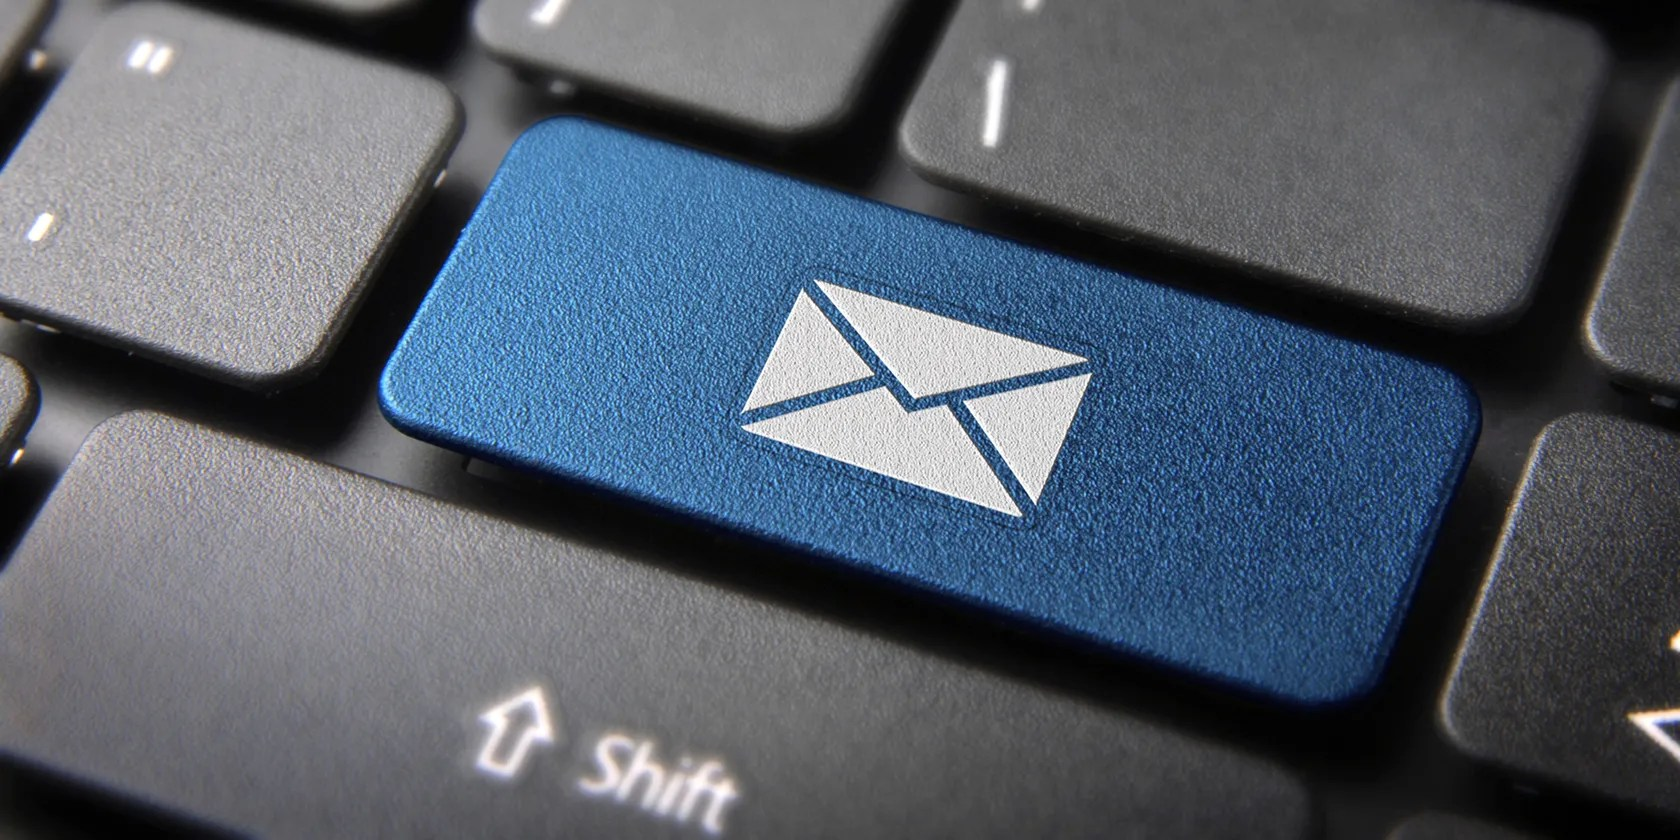 hight resolution of secure your email inbox with our free email security course